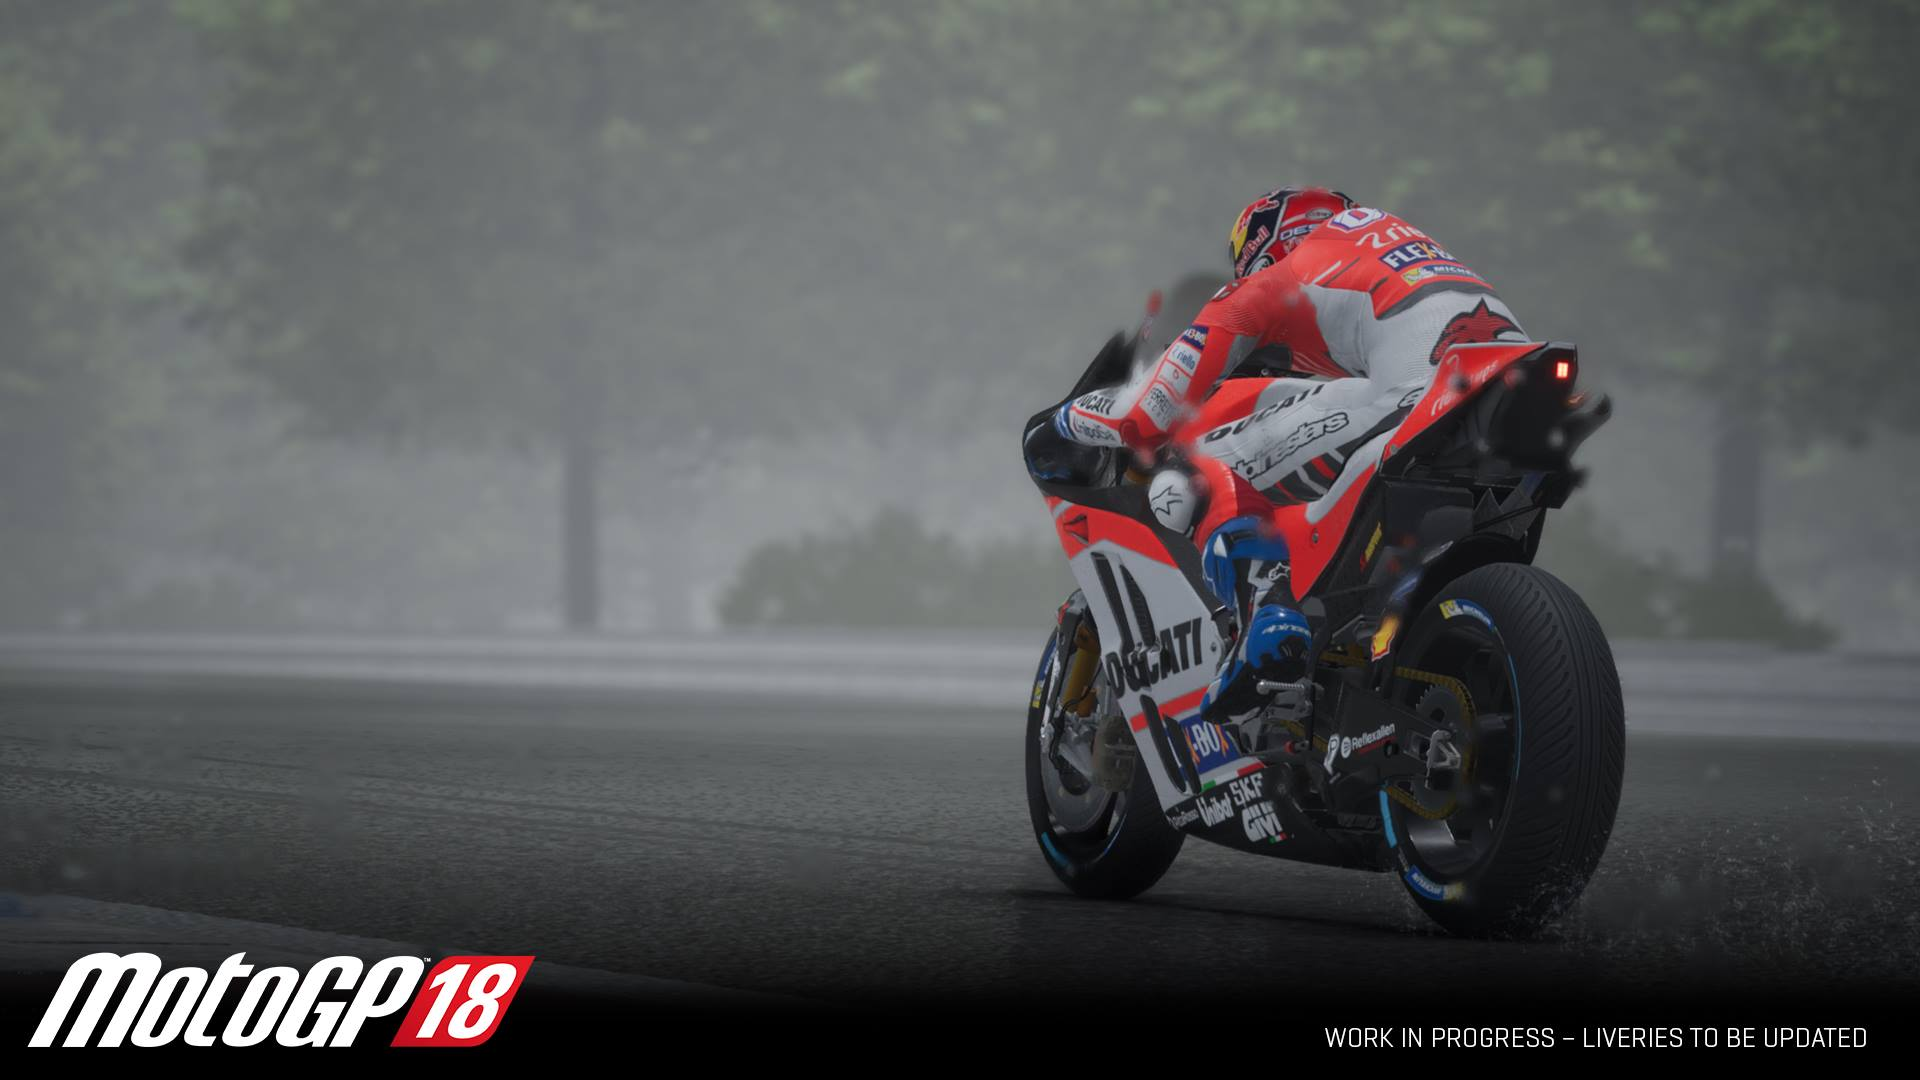 motogp18 gameplay